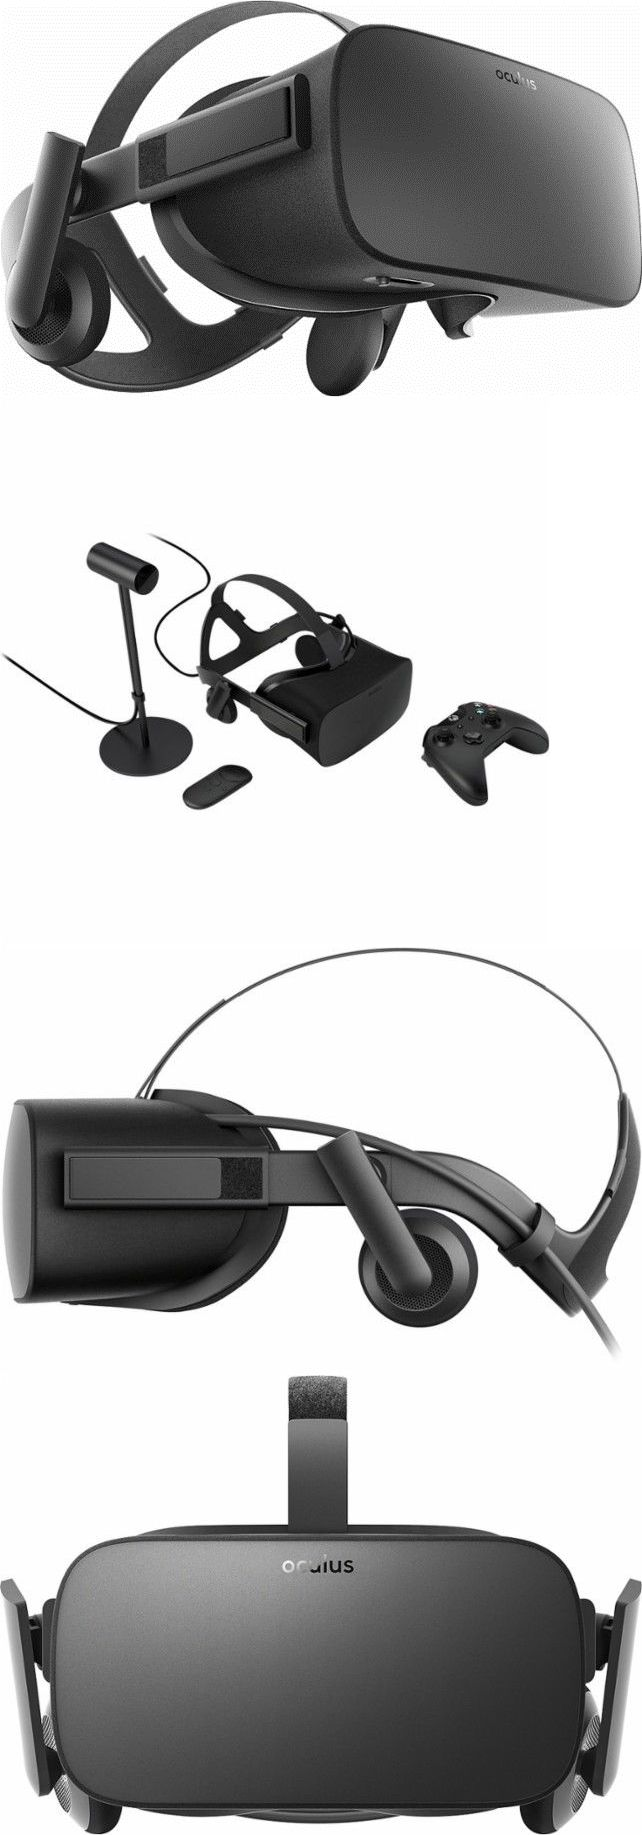 PC and Console VR Headsets: Oculus Rift Vr Virtual Reality Headset With Xbox One Controller New -> BUY IT NOW ONLY: $422.95 on eBay!